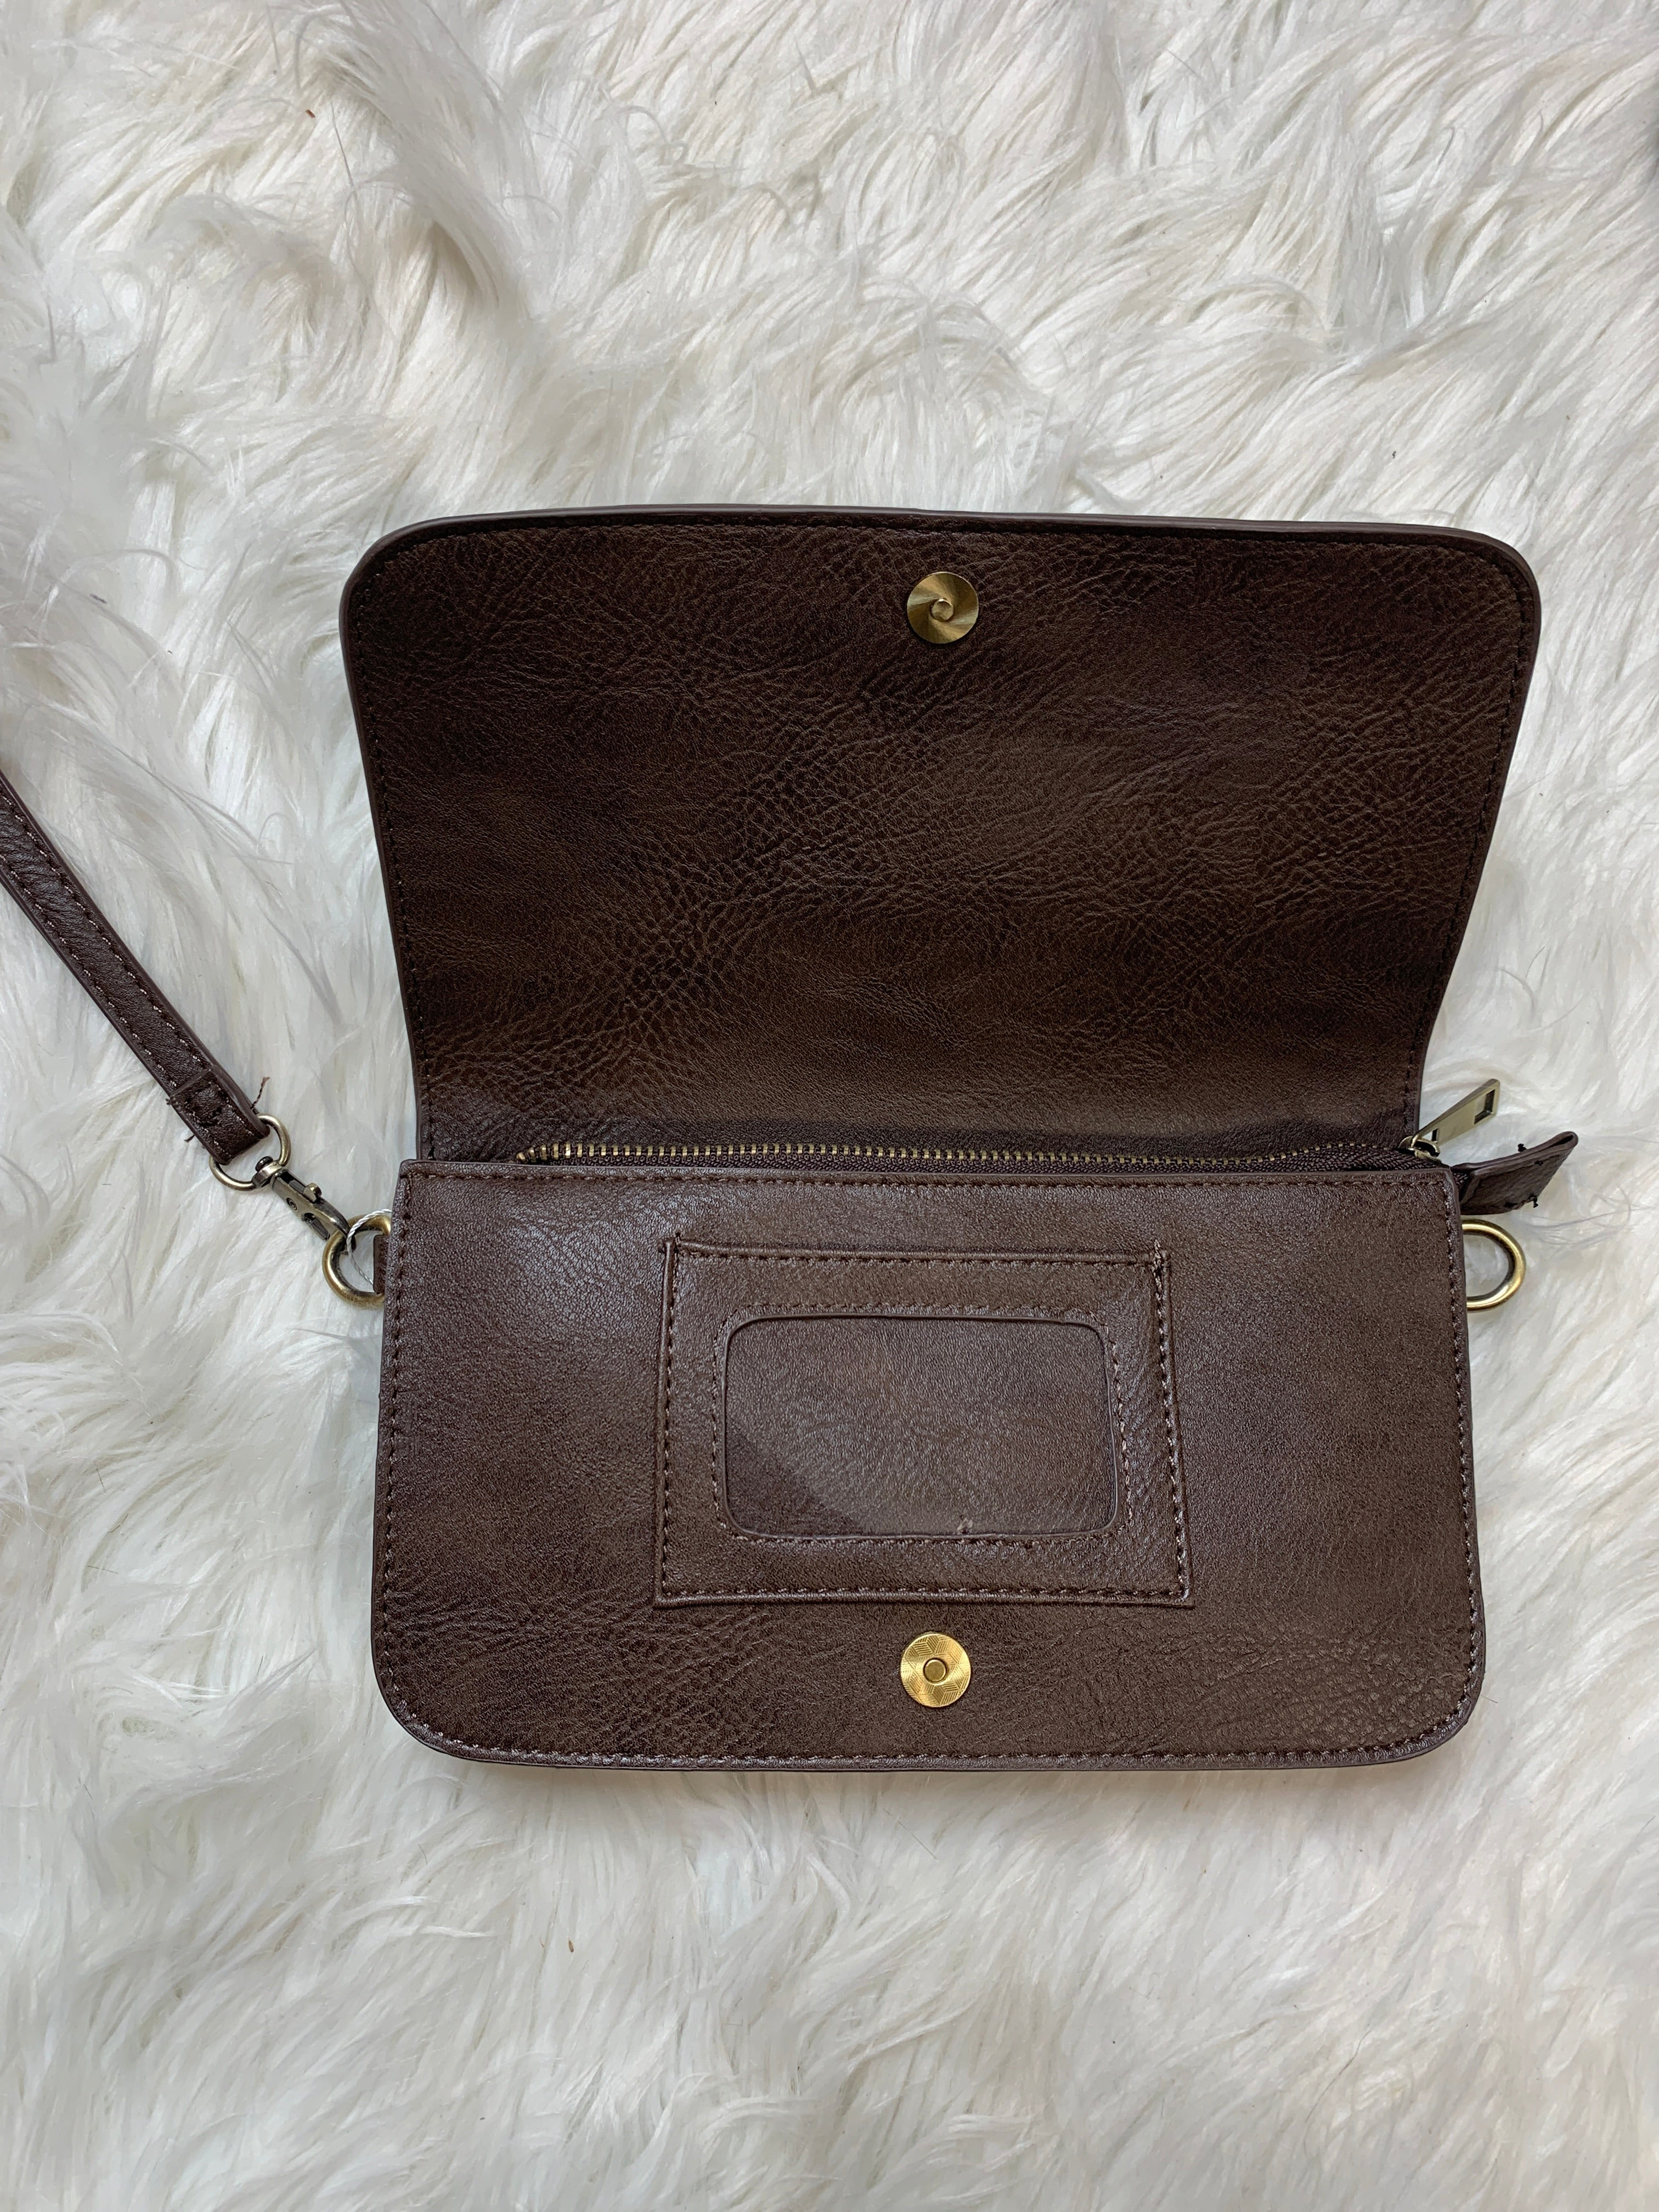 Mila Crossbody Handbag